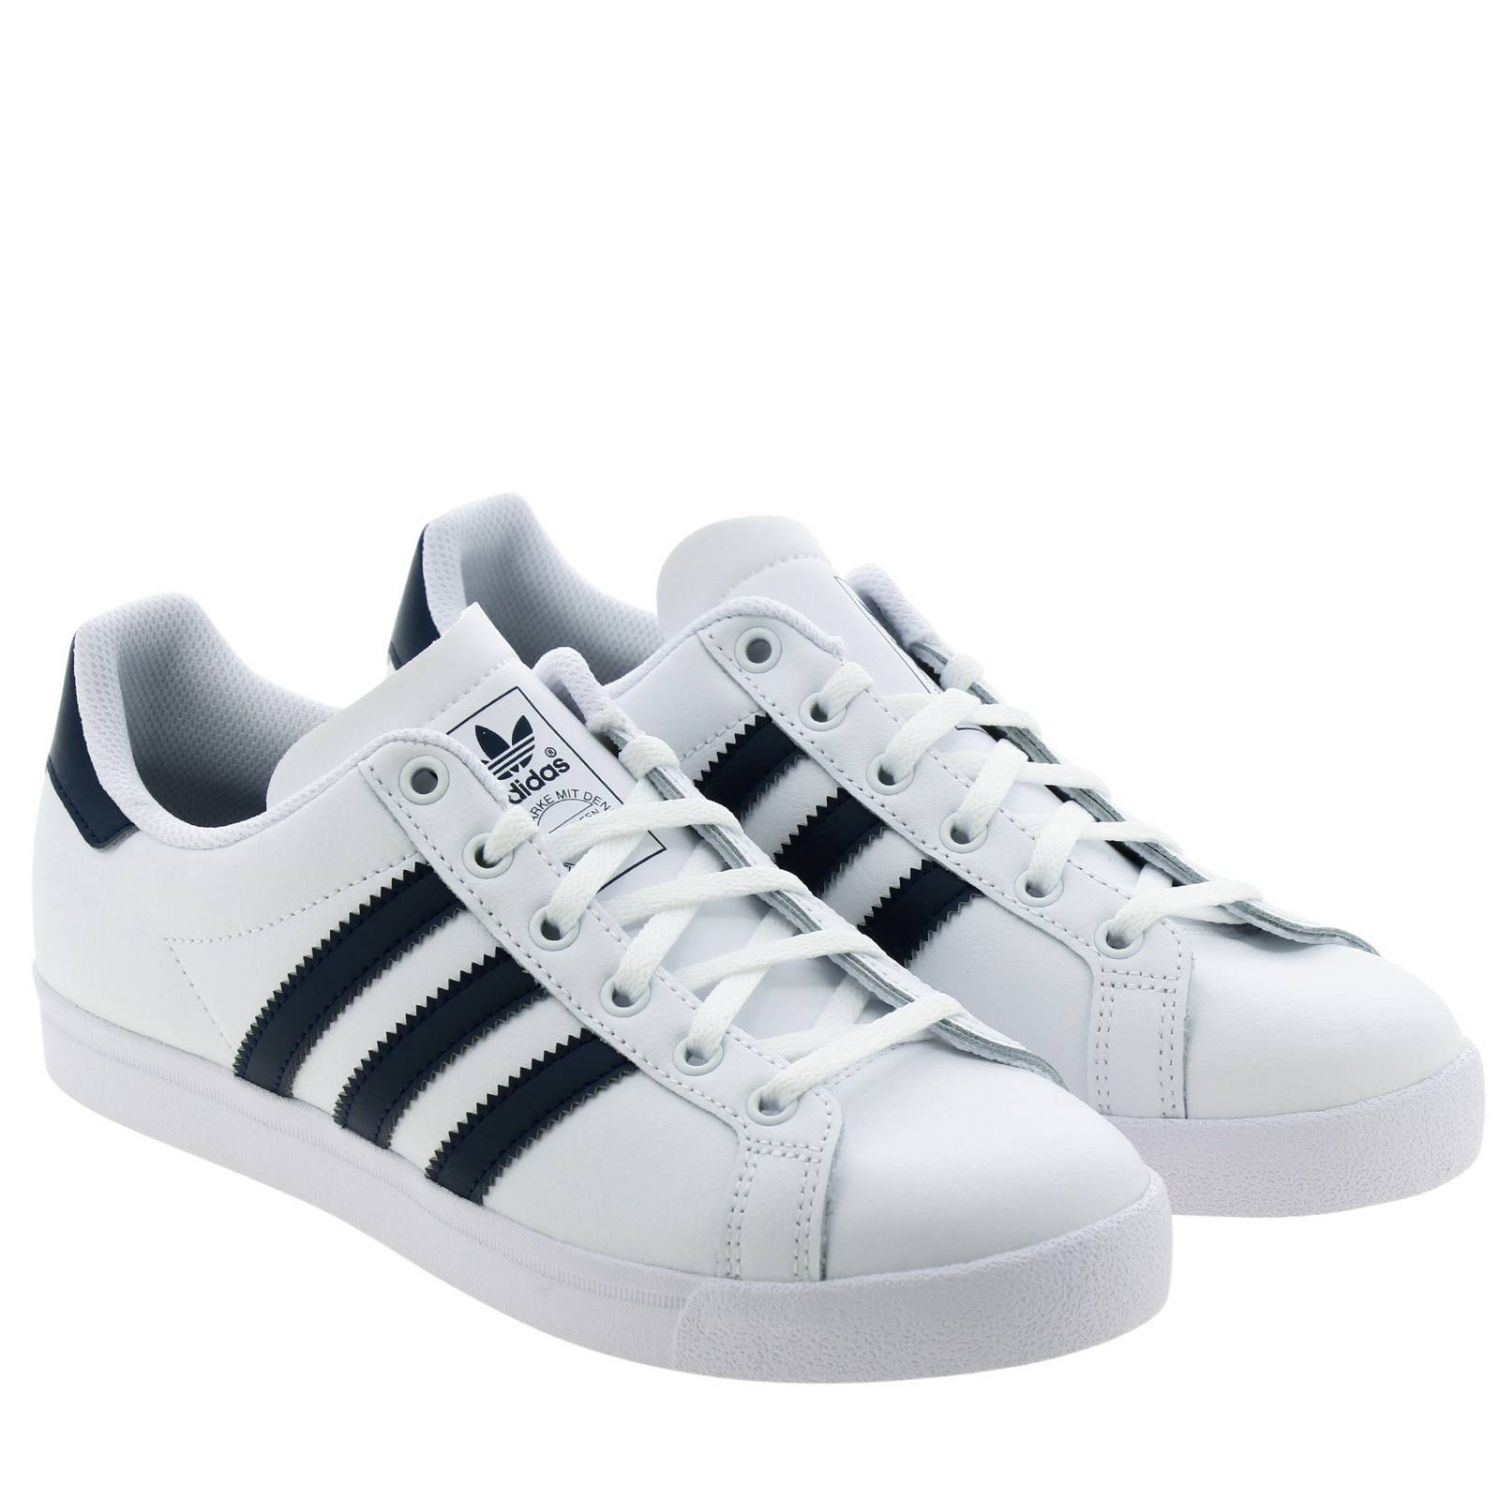 Coast star J Adidas Originals sneakers in leather with contrasting bands white 2